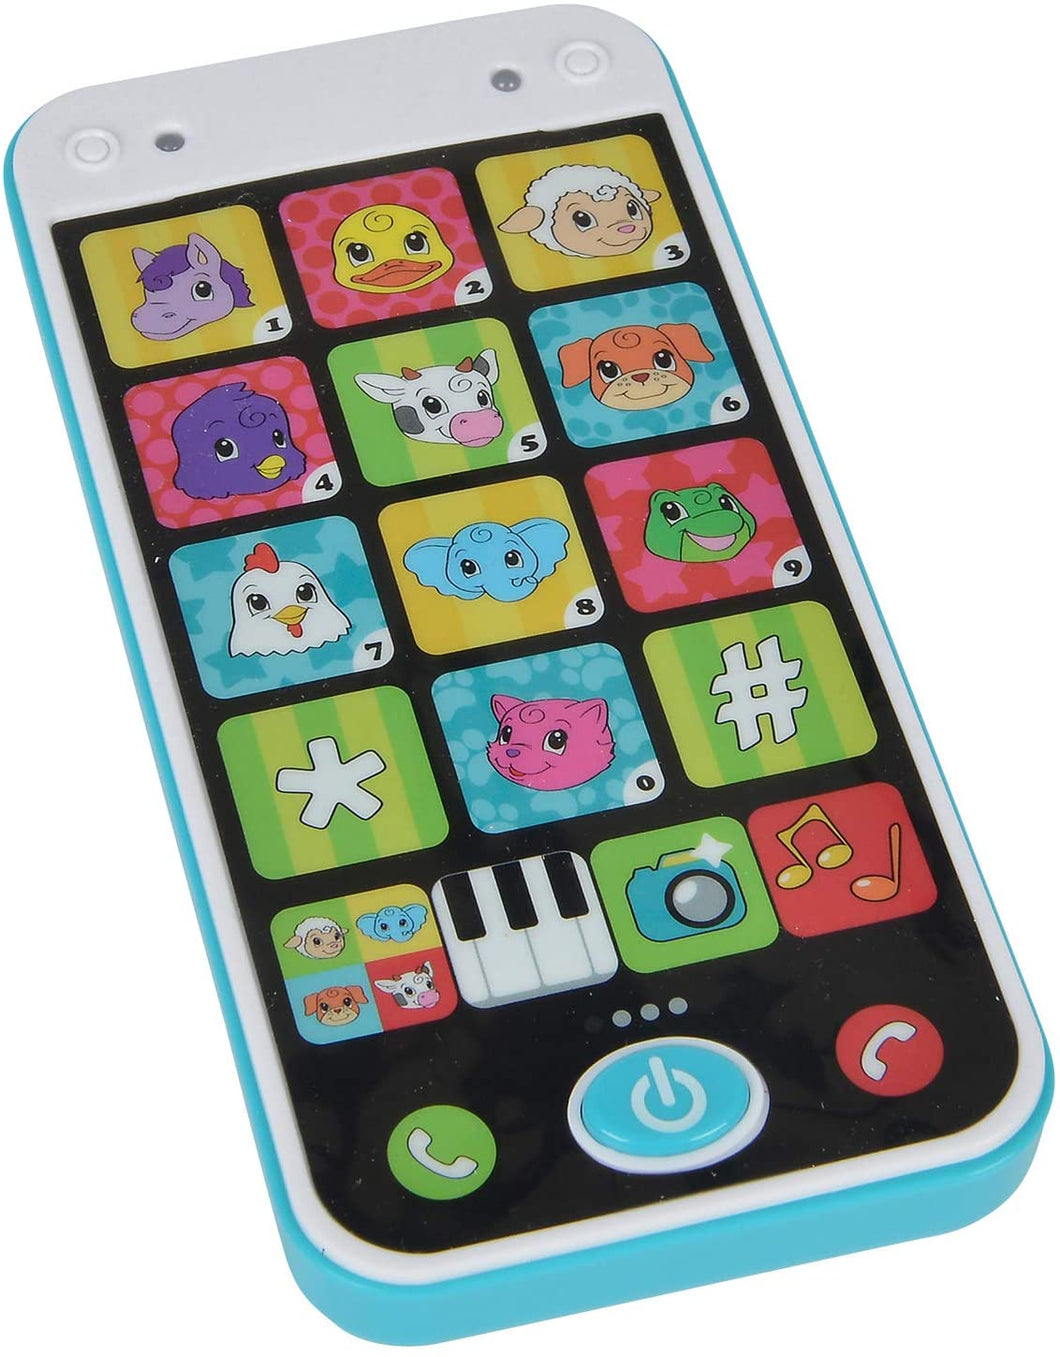 ABC 104010002 ABC Smart Phone Childs Toy 12-36 Months